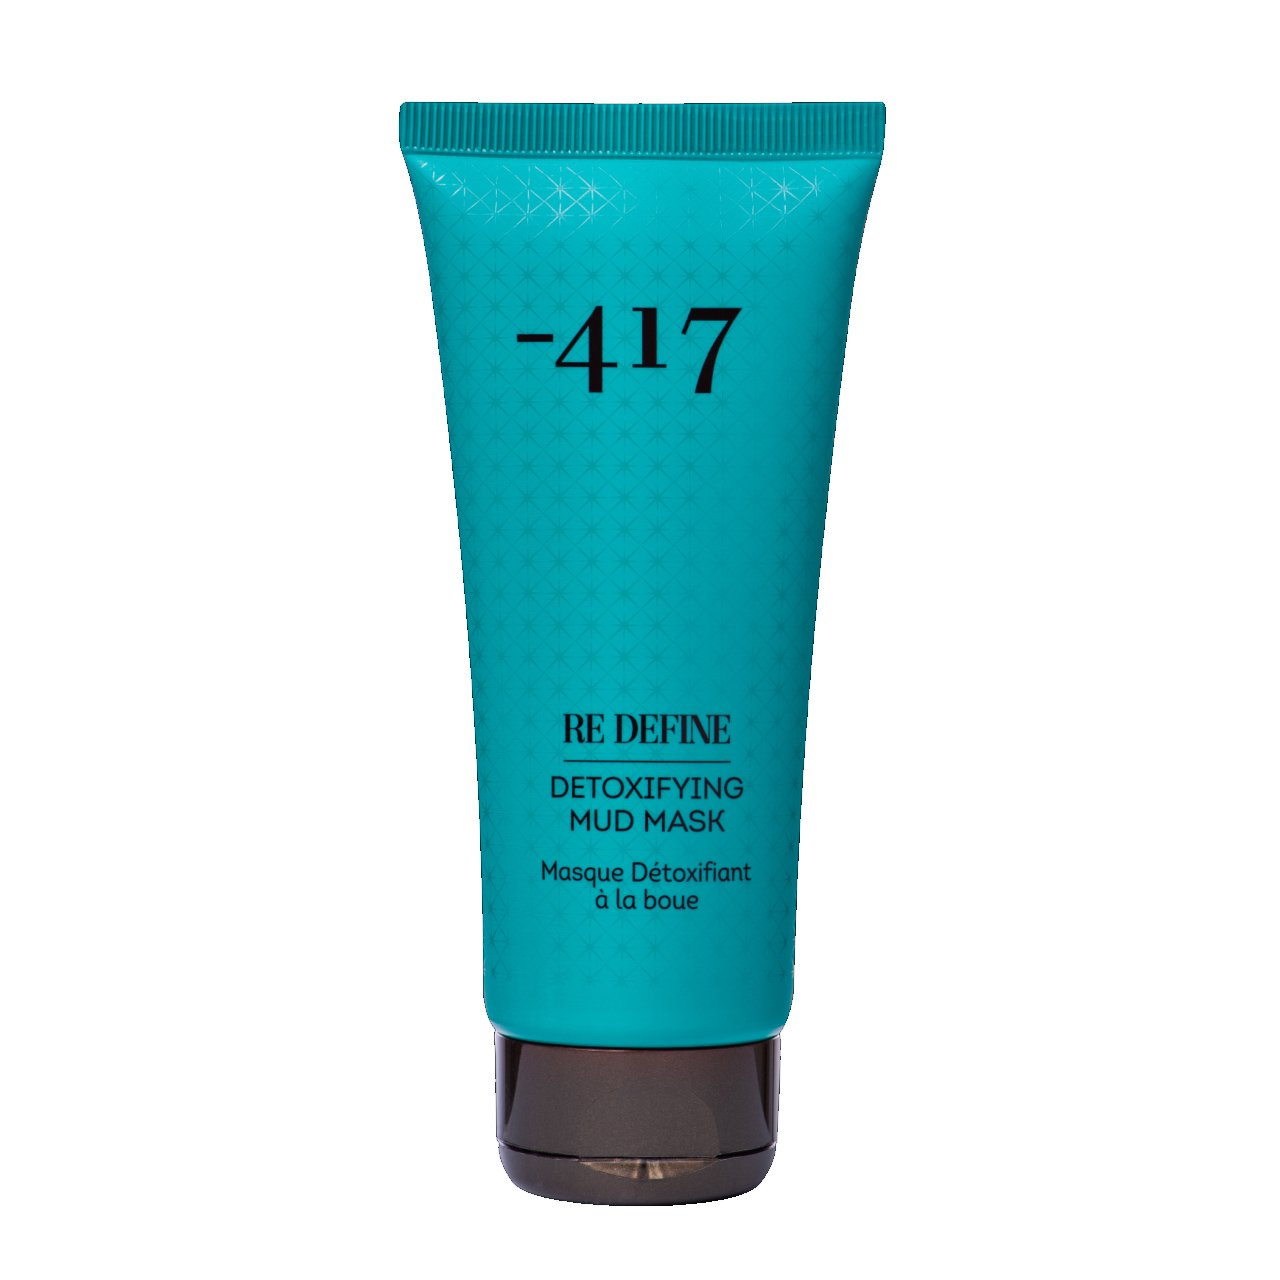 Minus 417 Re Define Detoxifying Mud Mask 100ml